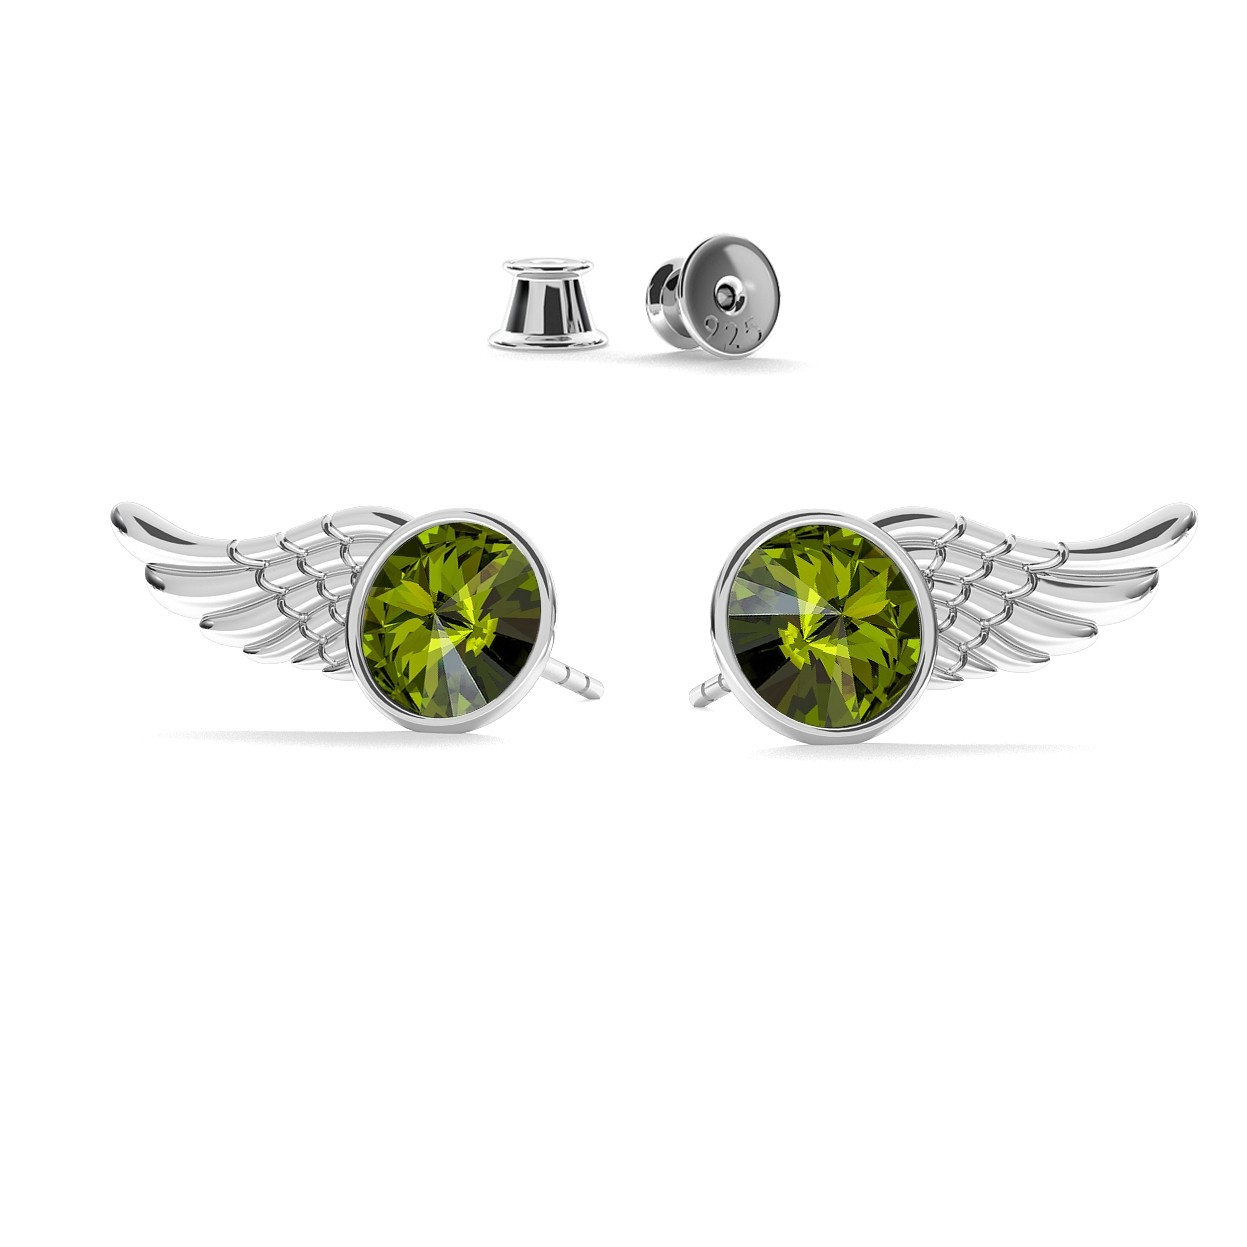 WING EARRINGS SWAROVSKI RIVOLI